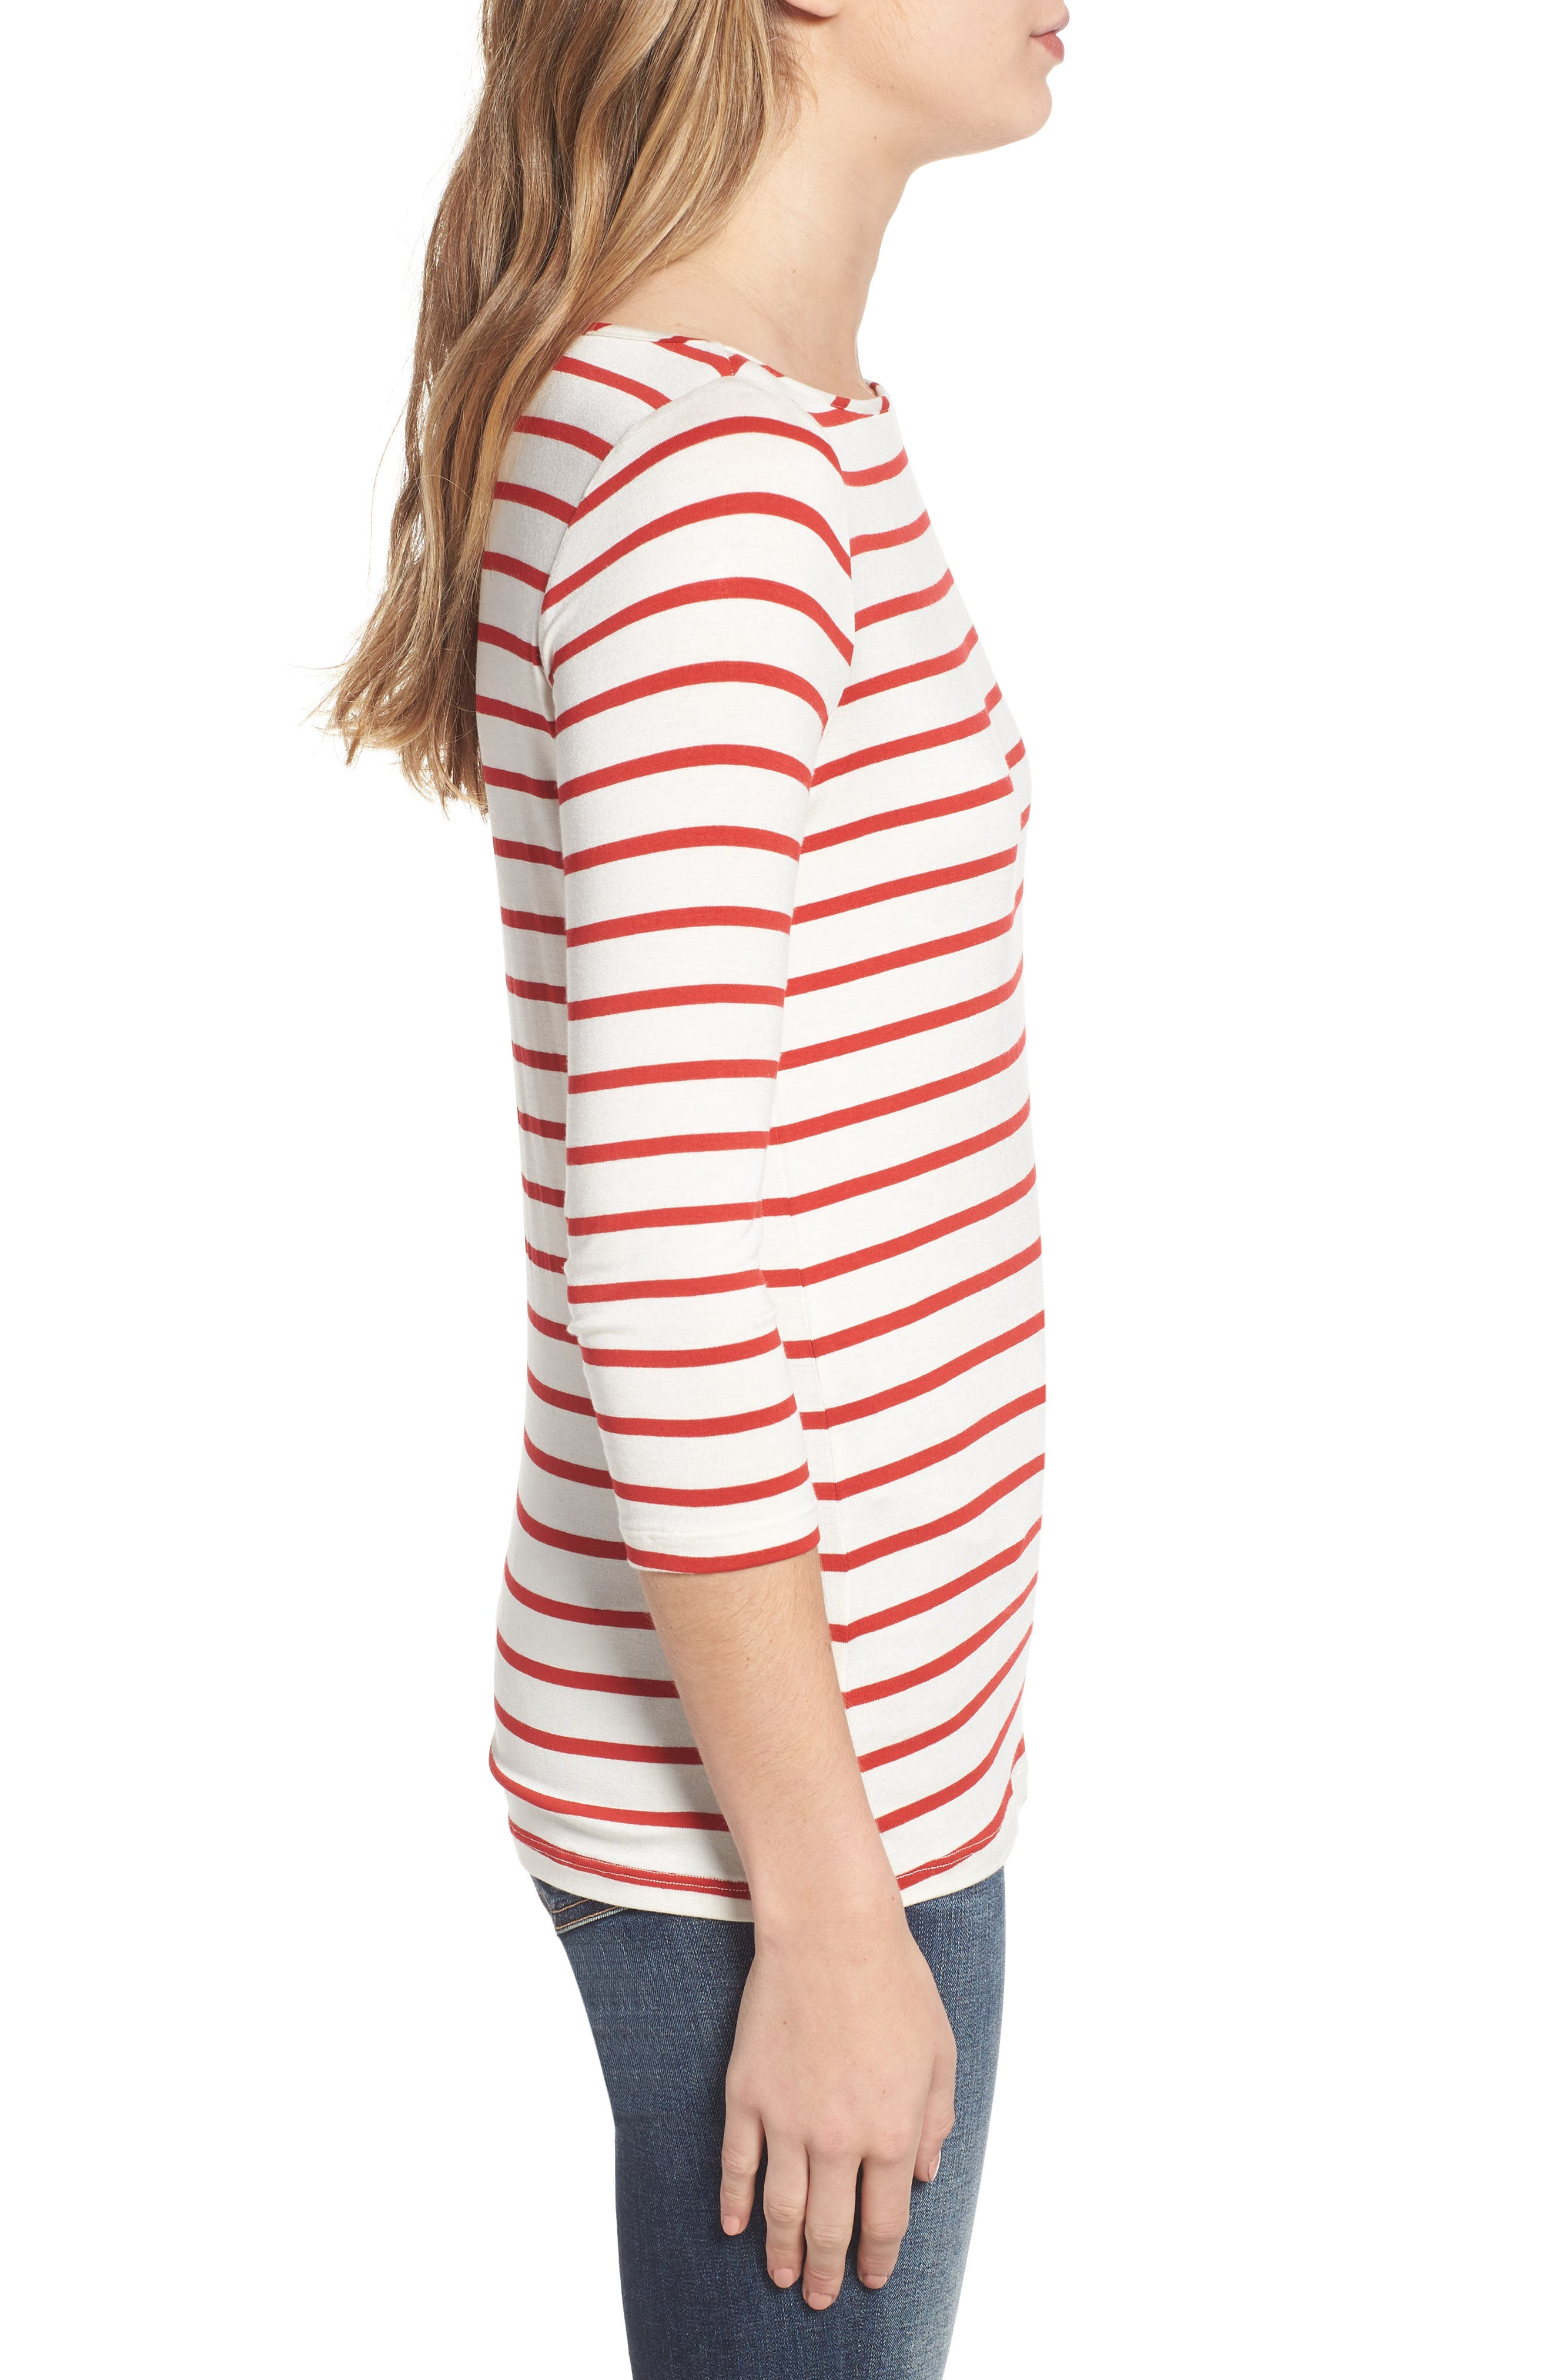 AMOUR VERT, Francoise Stretch Jersey Top, Alternate thumbnail 3, color, POPPY STRIPE